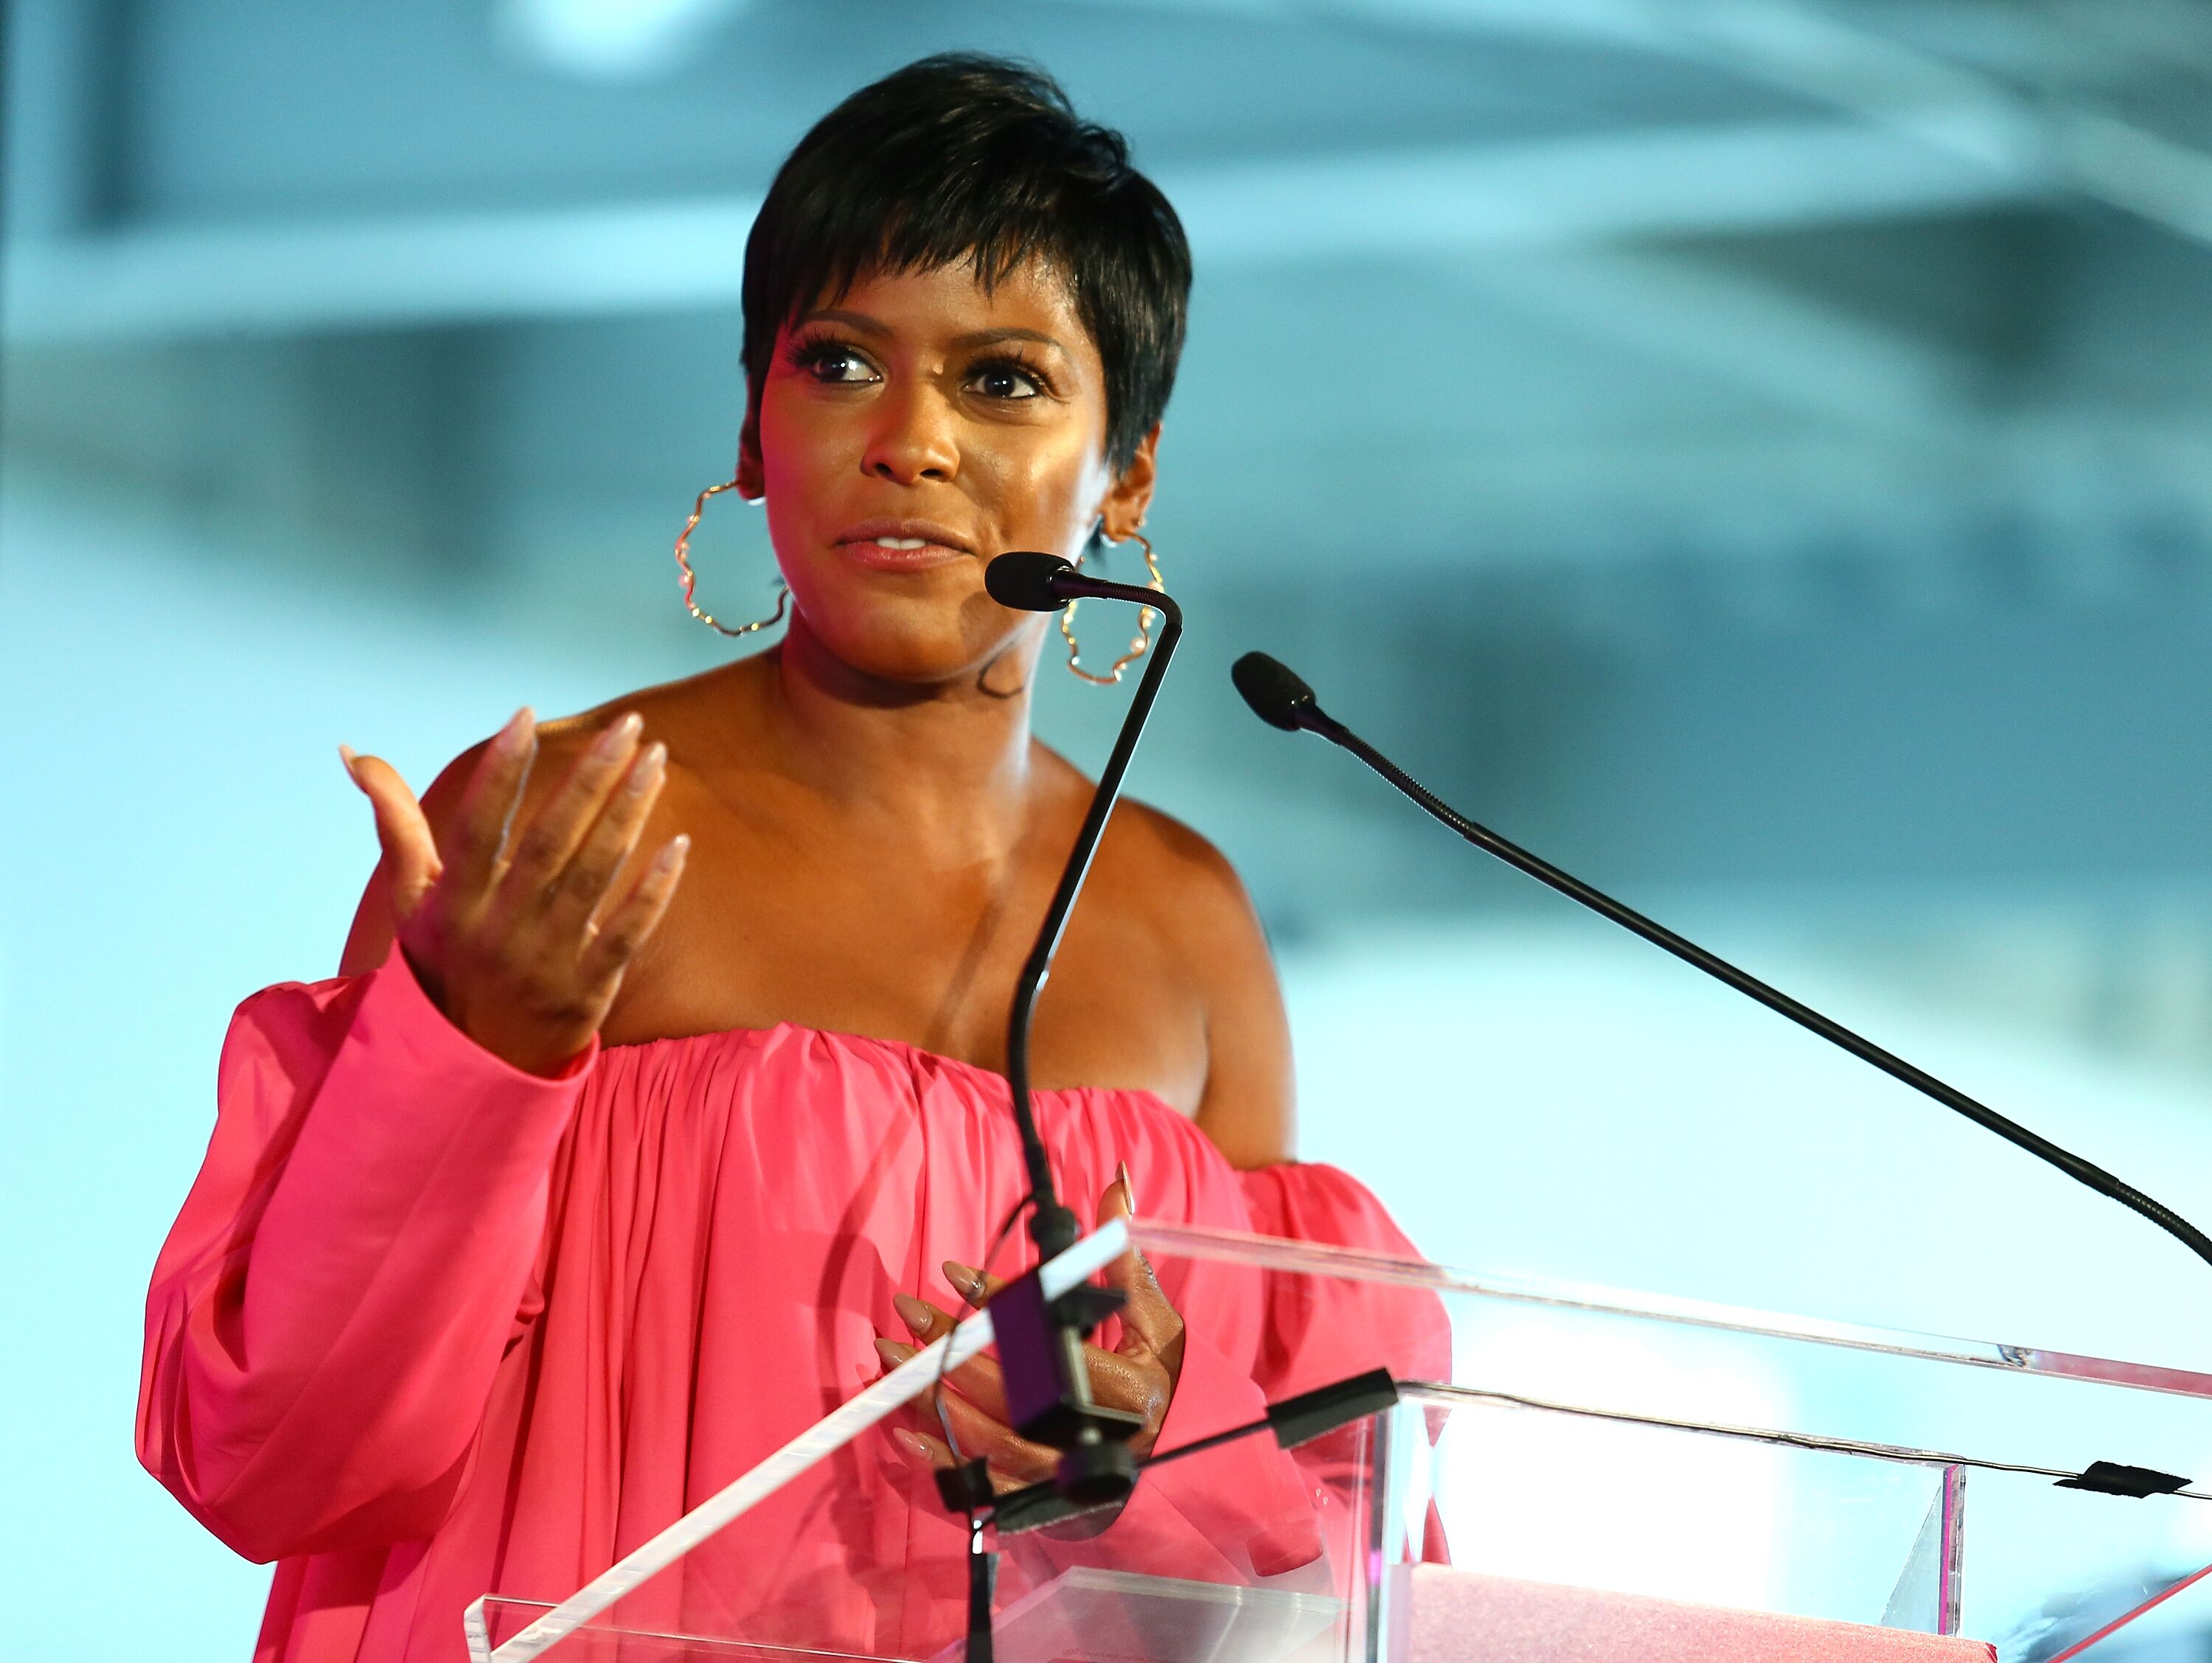 Tamron Hall at one of her speaking engagements | Source: Getty Images/GlobalImagesUkraine